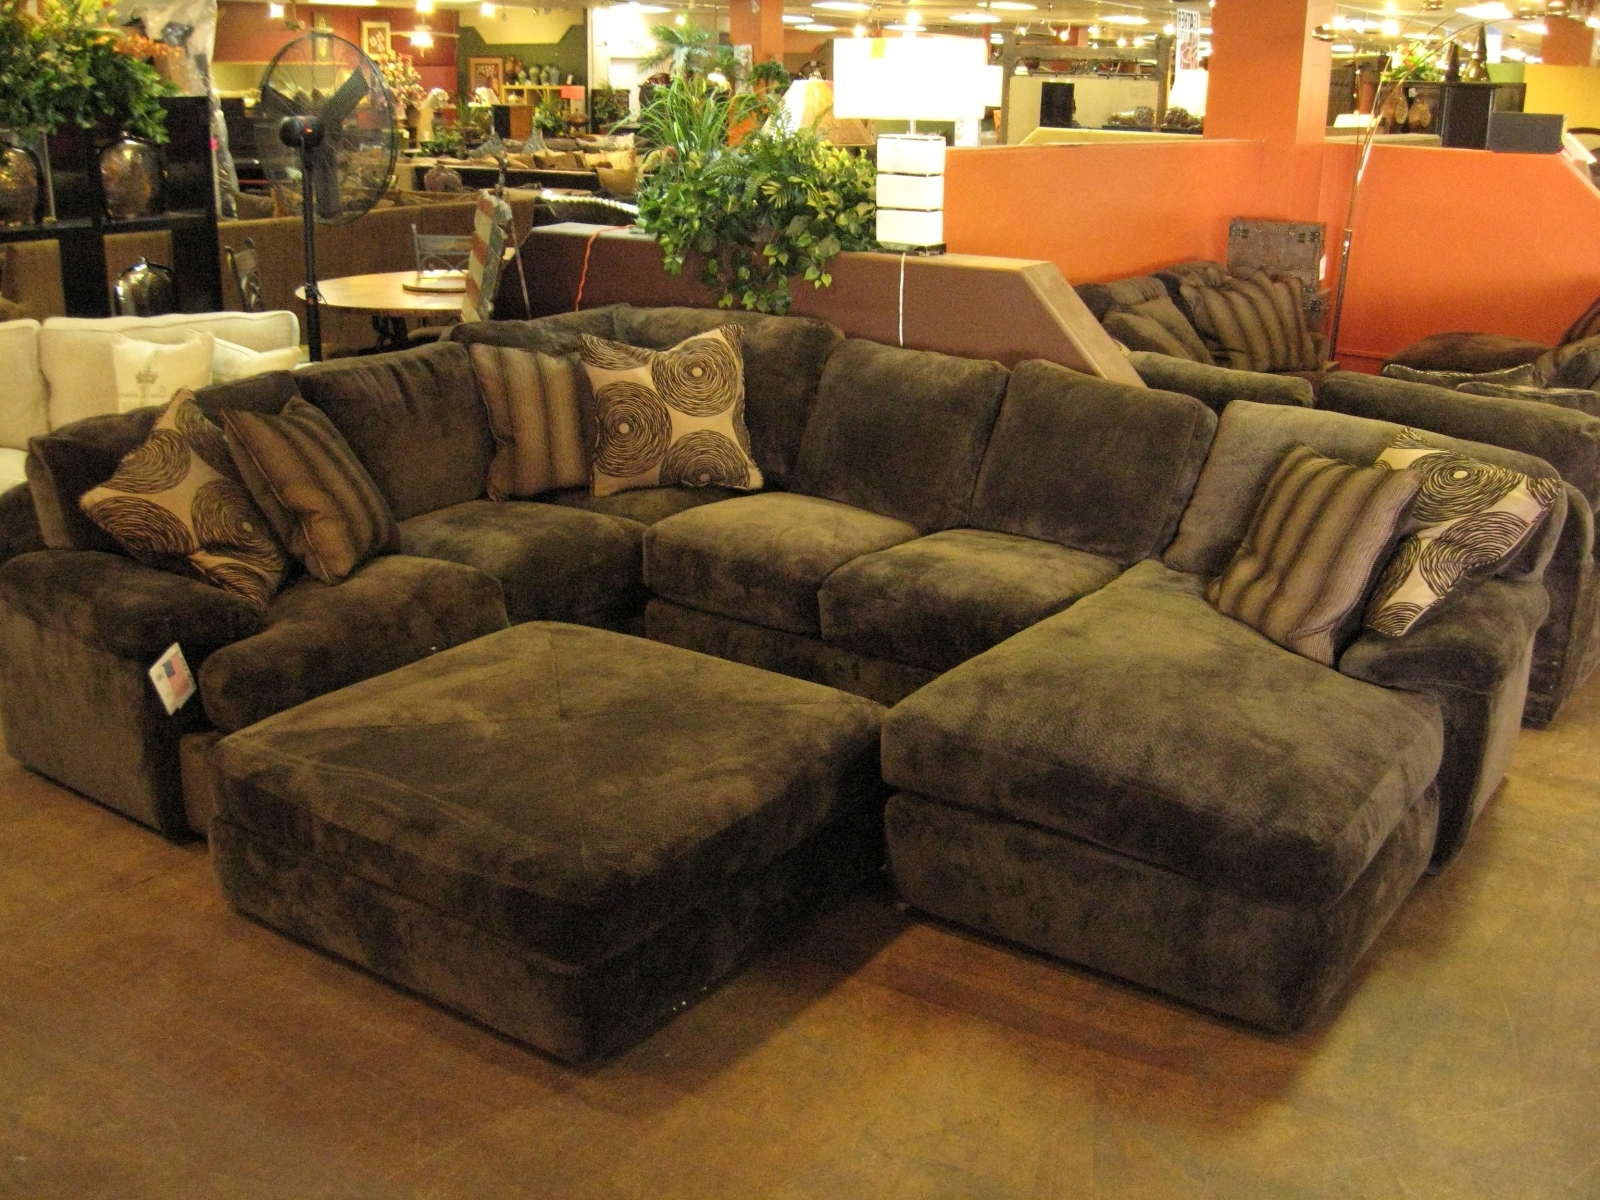 Most Up To Date Black Velvet Fabric Sectional Sleeper Sofa With Chaise Lounge And Throughout Sectional Sofas With Chaise Lounge And Ottoman (View 8 of 20)